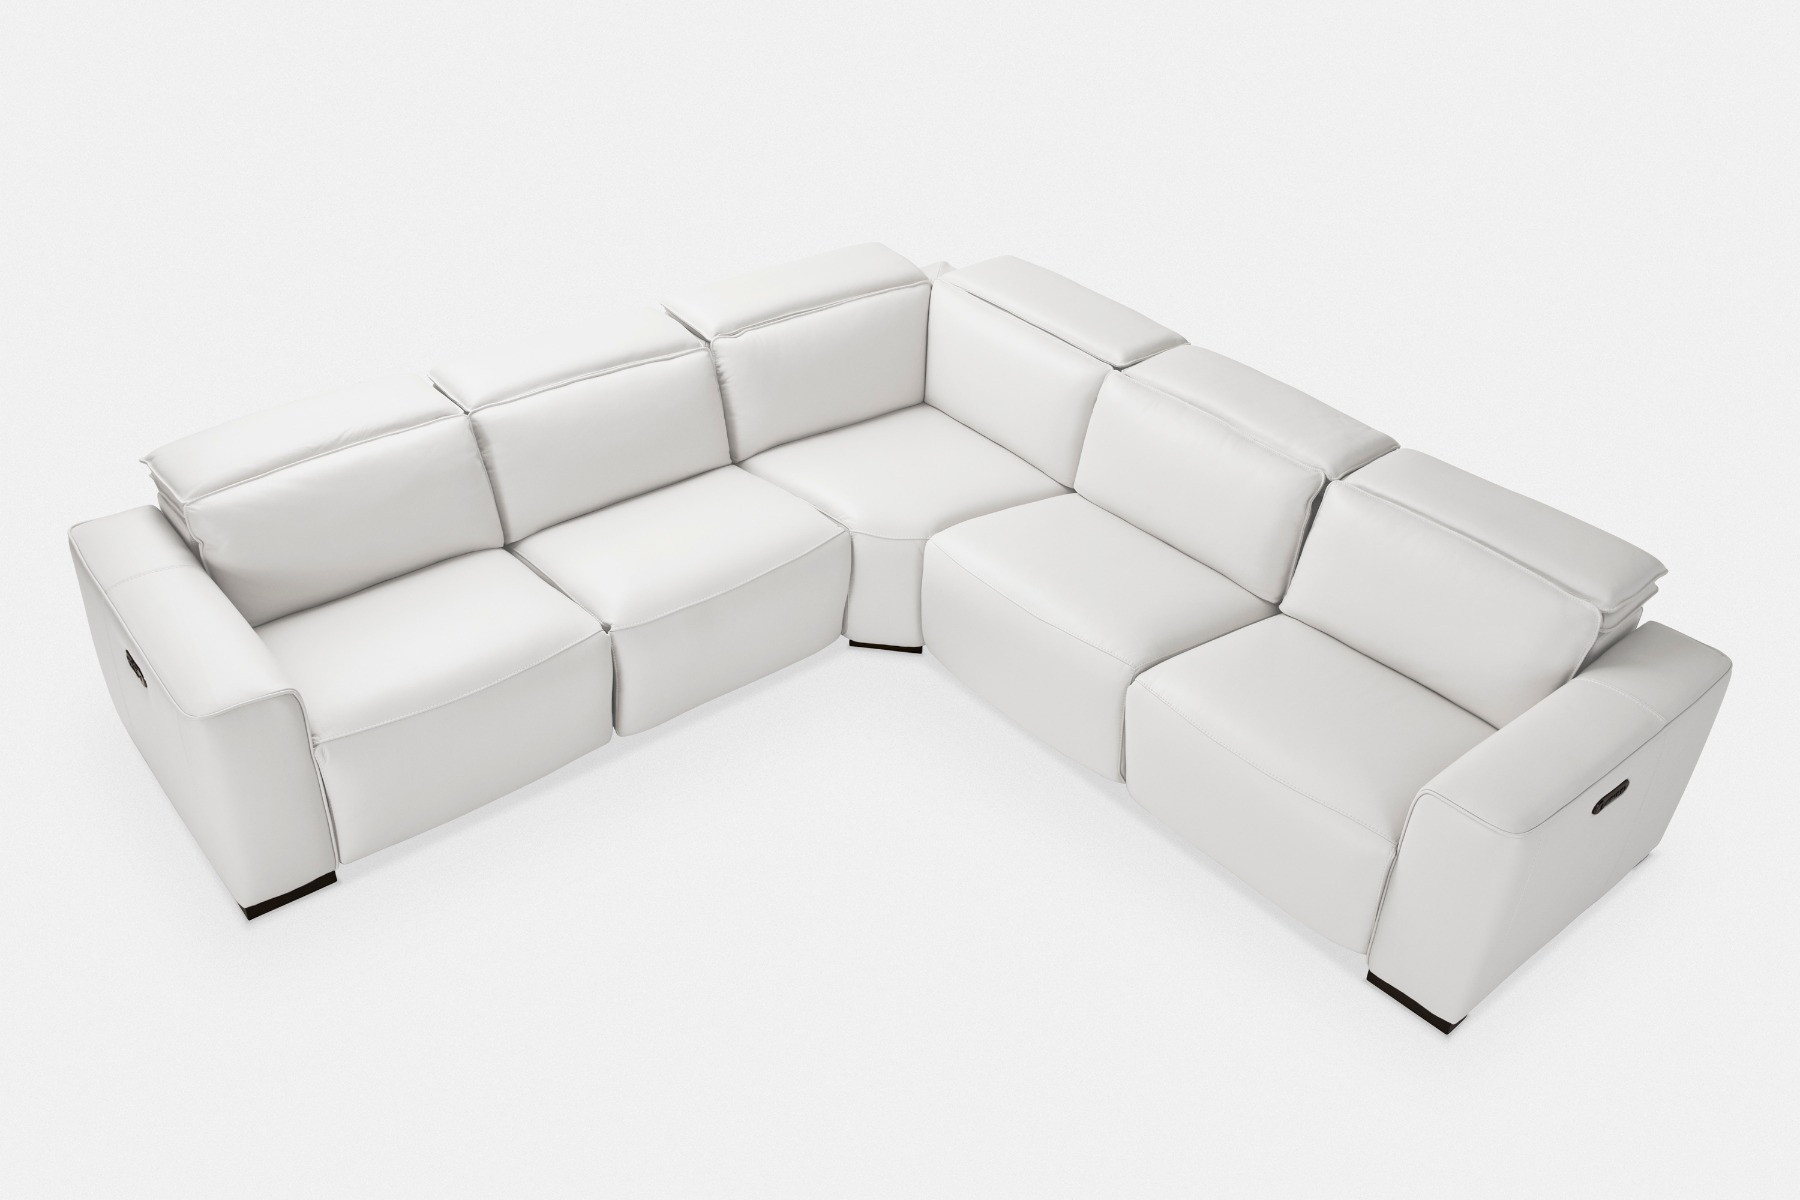 Groovy Rome Leather Sectional Sofa Maison Corbeil Caraccident5 Cool Chair Designs And Ideas Caraccident5Info